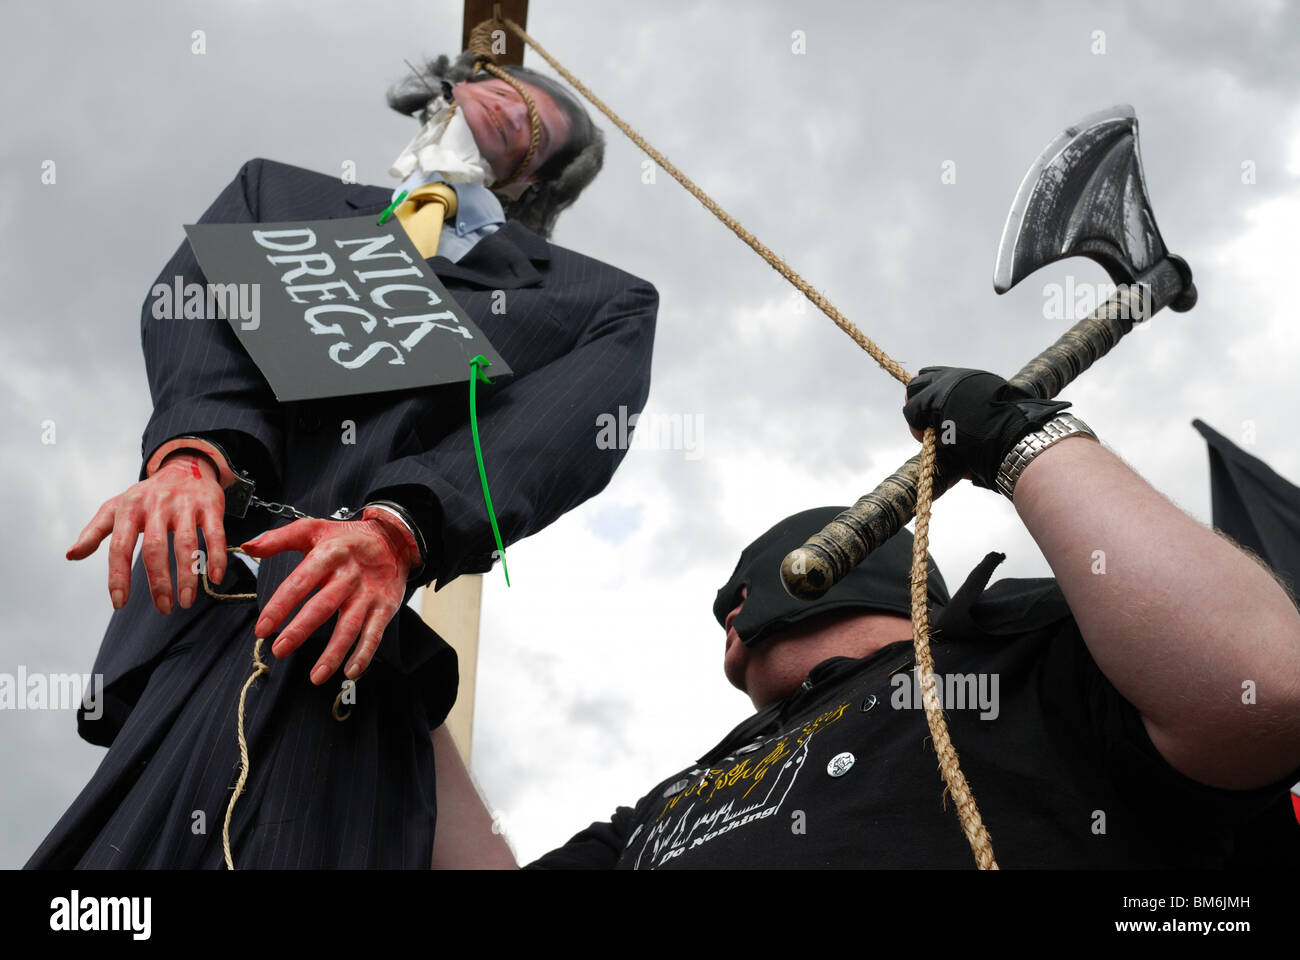 The effigy of Liberal Democrat leader Nick Clegg being hung by the executioner on Parliament Square on May Day. - Stock Image